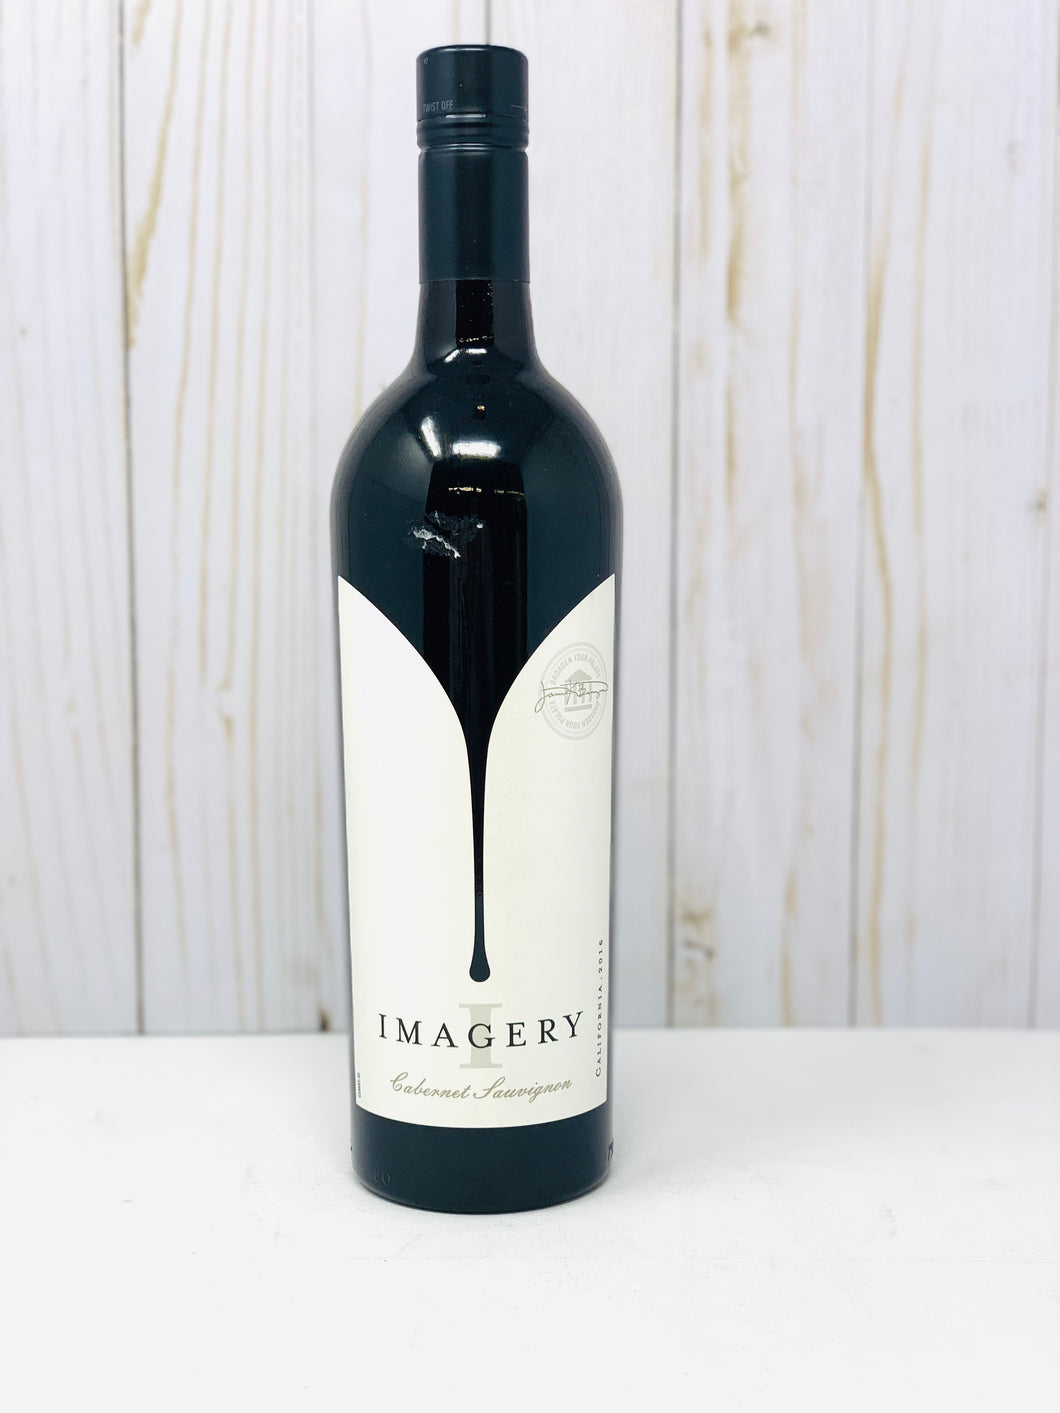 Imagery Estate Winery Cabernet Sauvignon 2016 - Palmspringsliquorstore